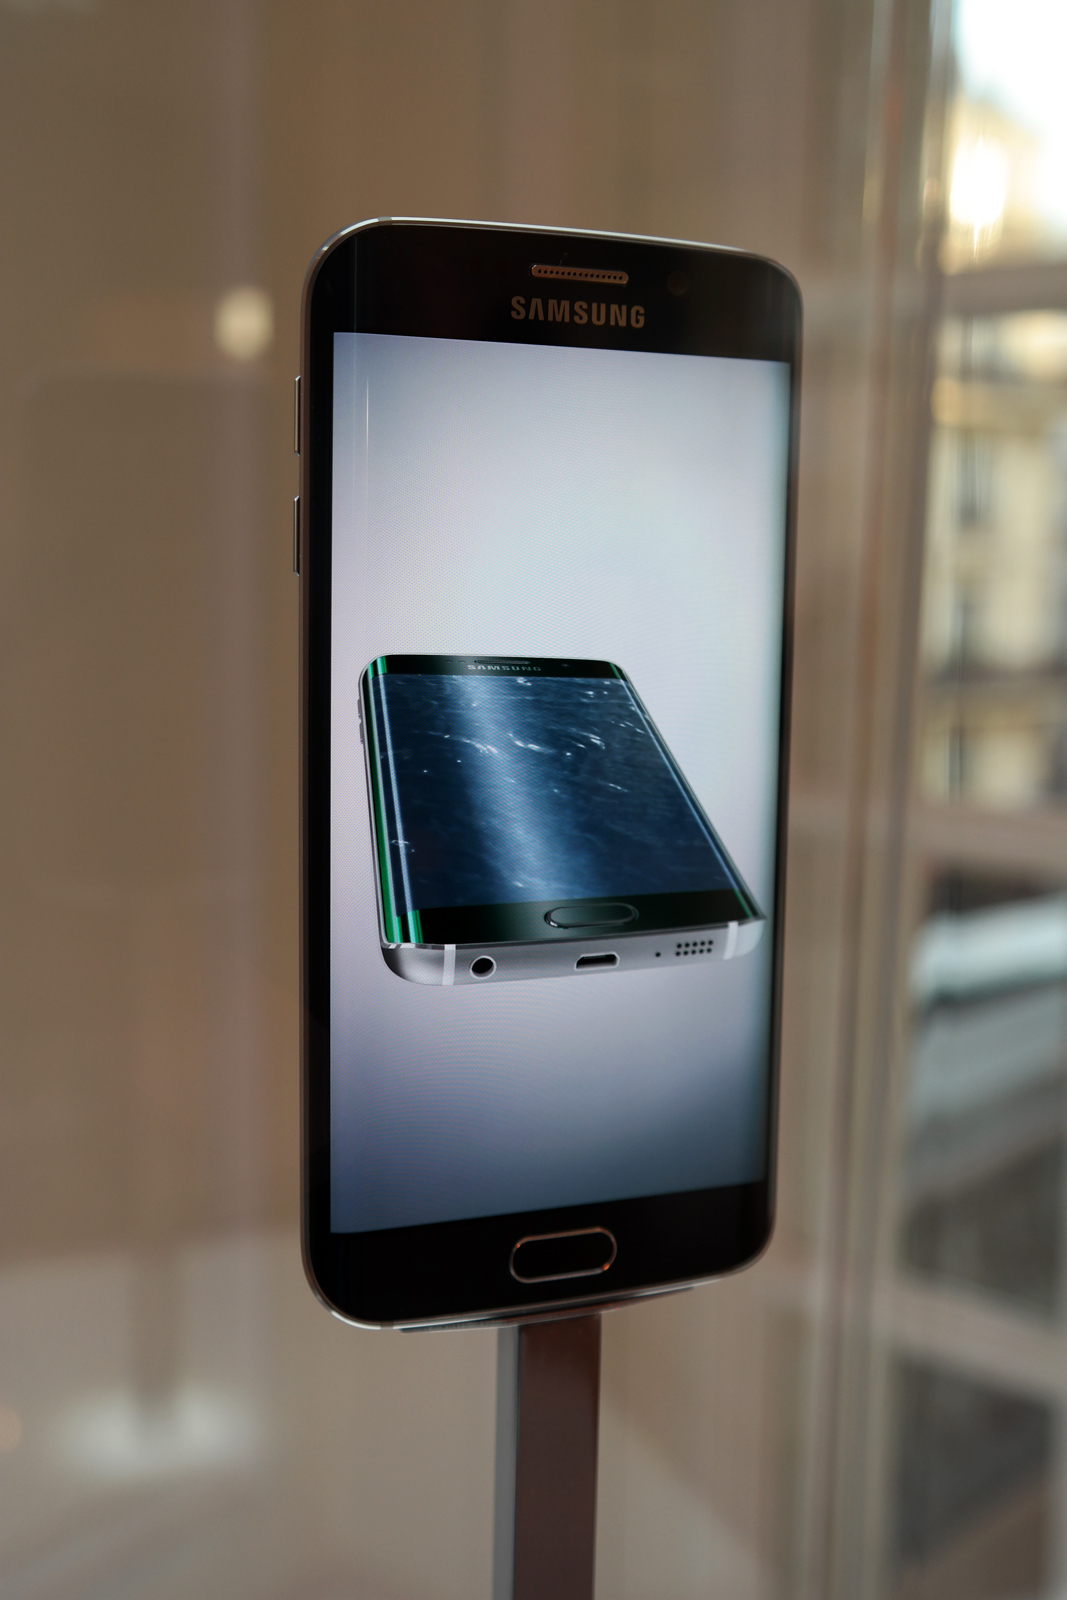 Ecran-Galaxy-S6-Samsung-smartphone-portable-opé-bloggers-événement-16-mégapixels-photo-by-united-states-of-paris-blog